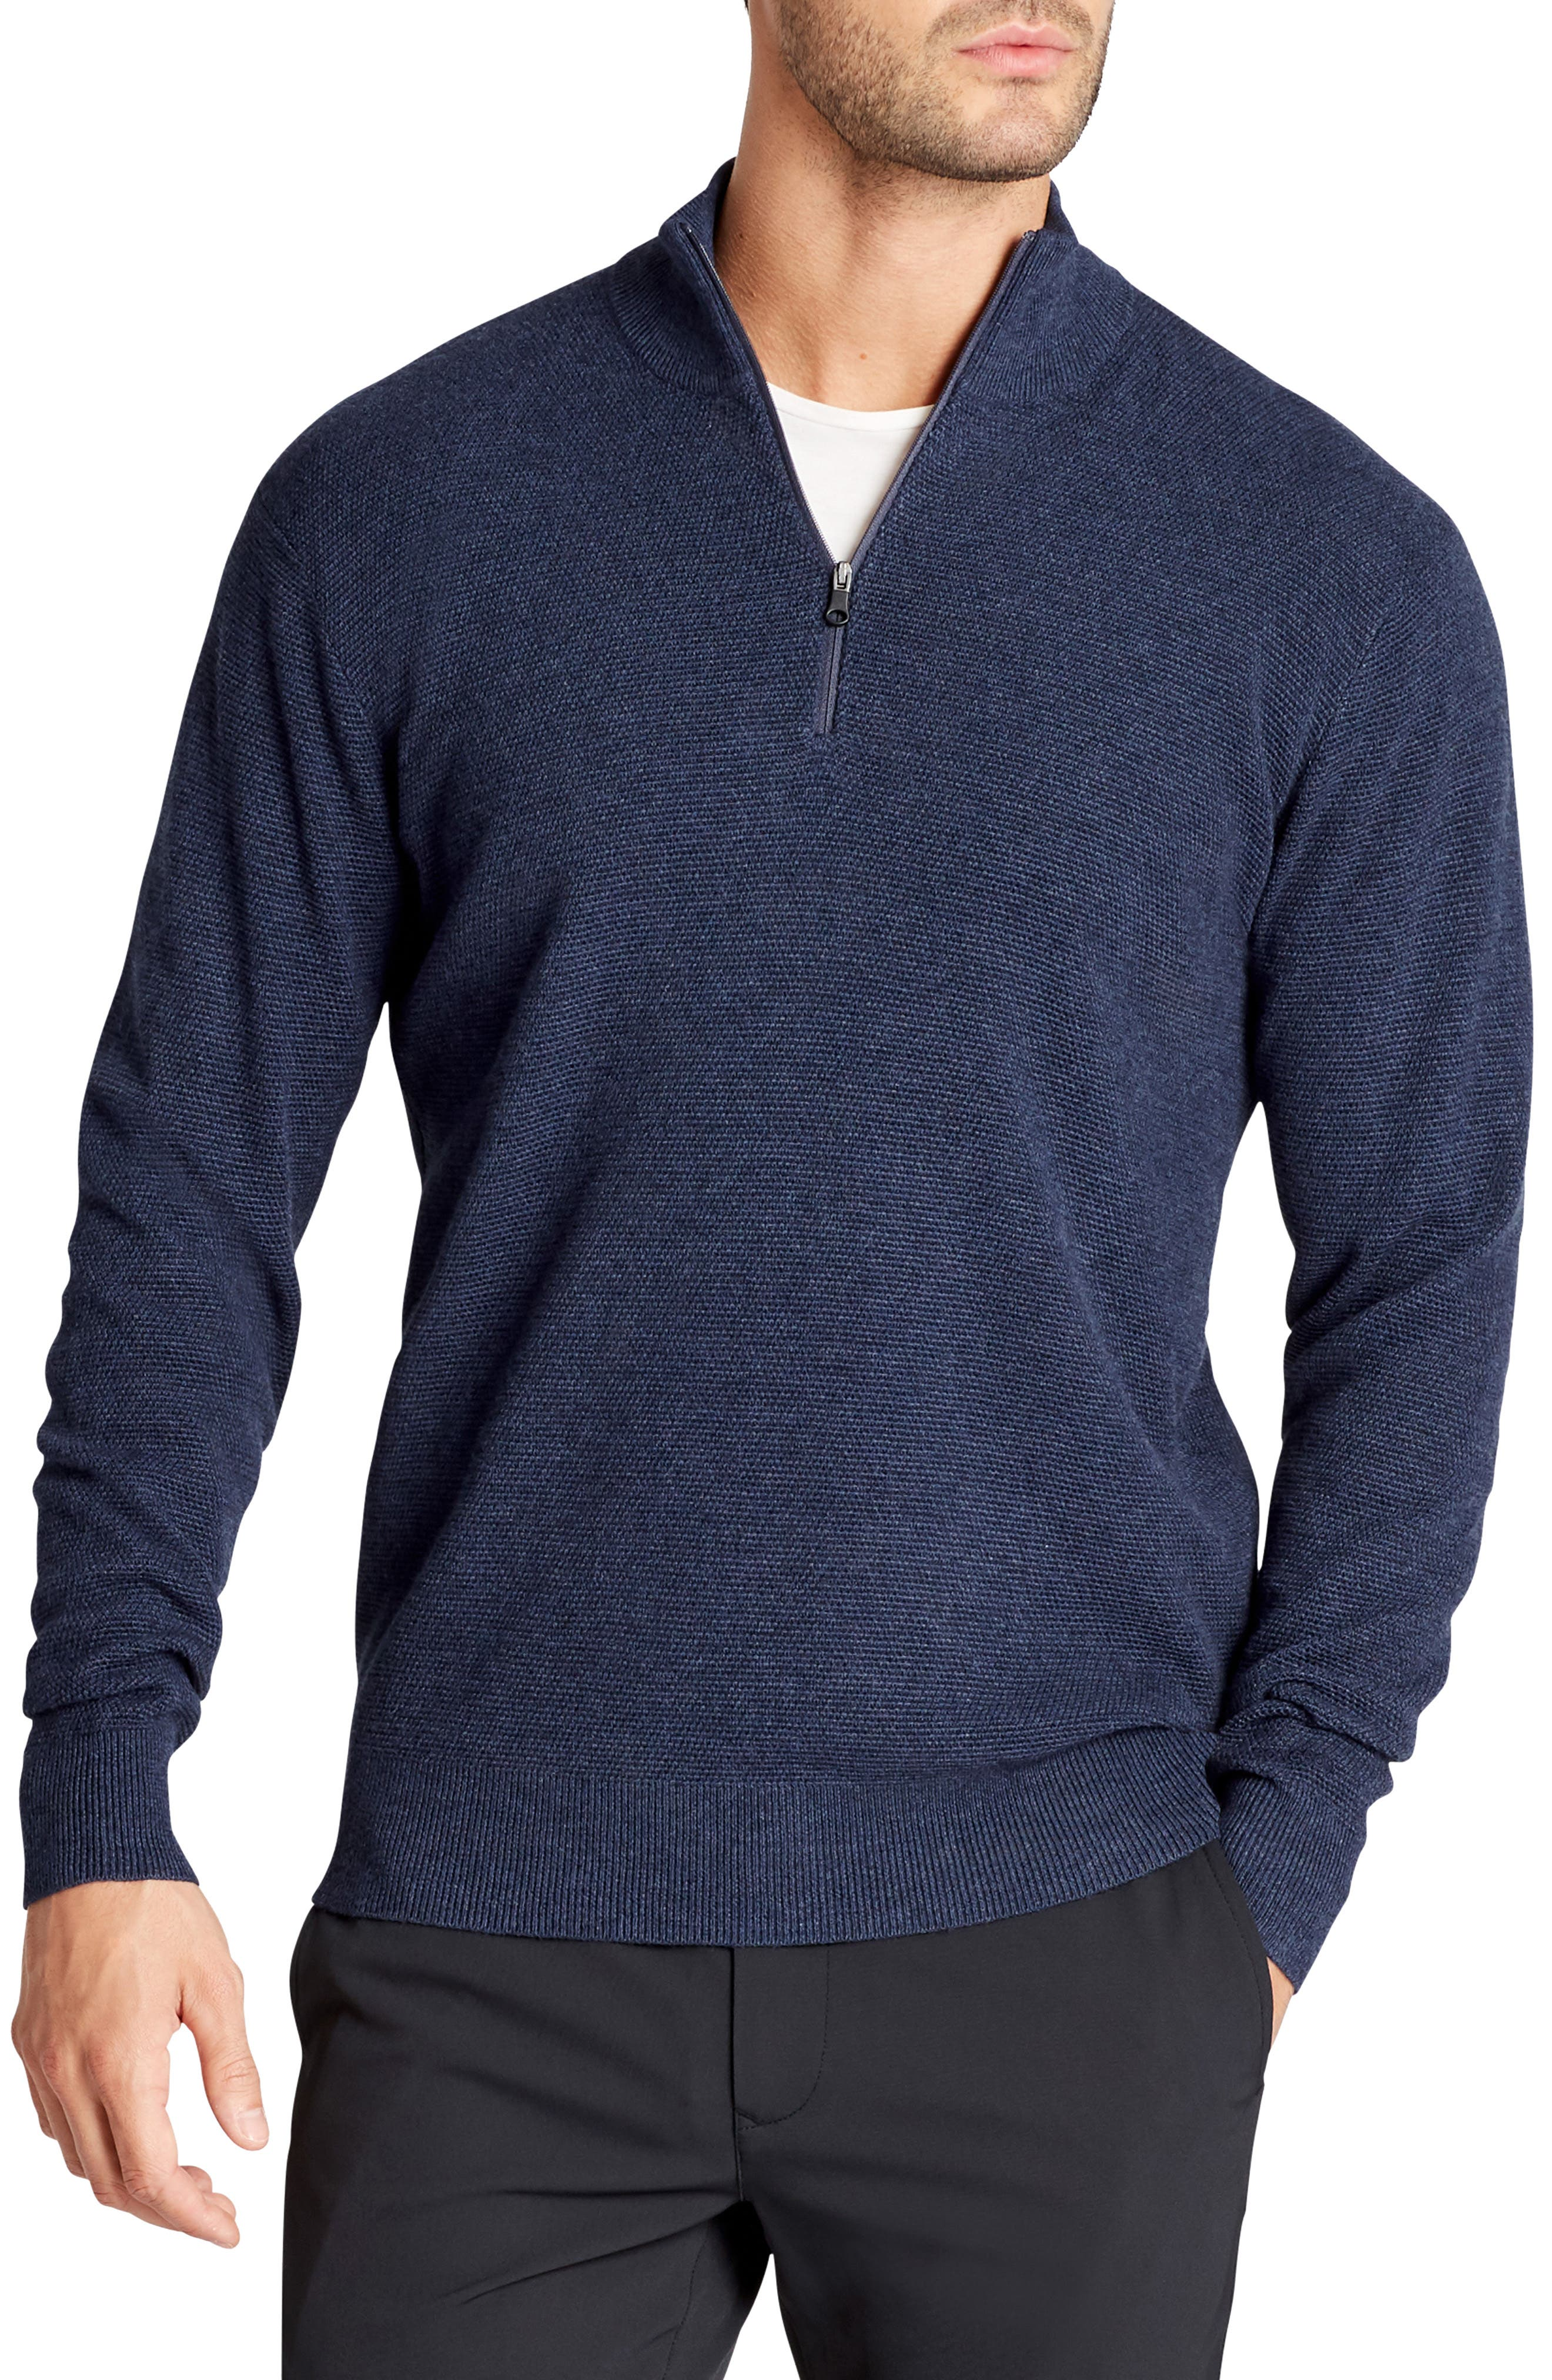 The Knockdown Quarter Zip Pullover,                         Main,                         color, Heather Navy